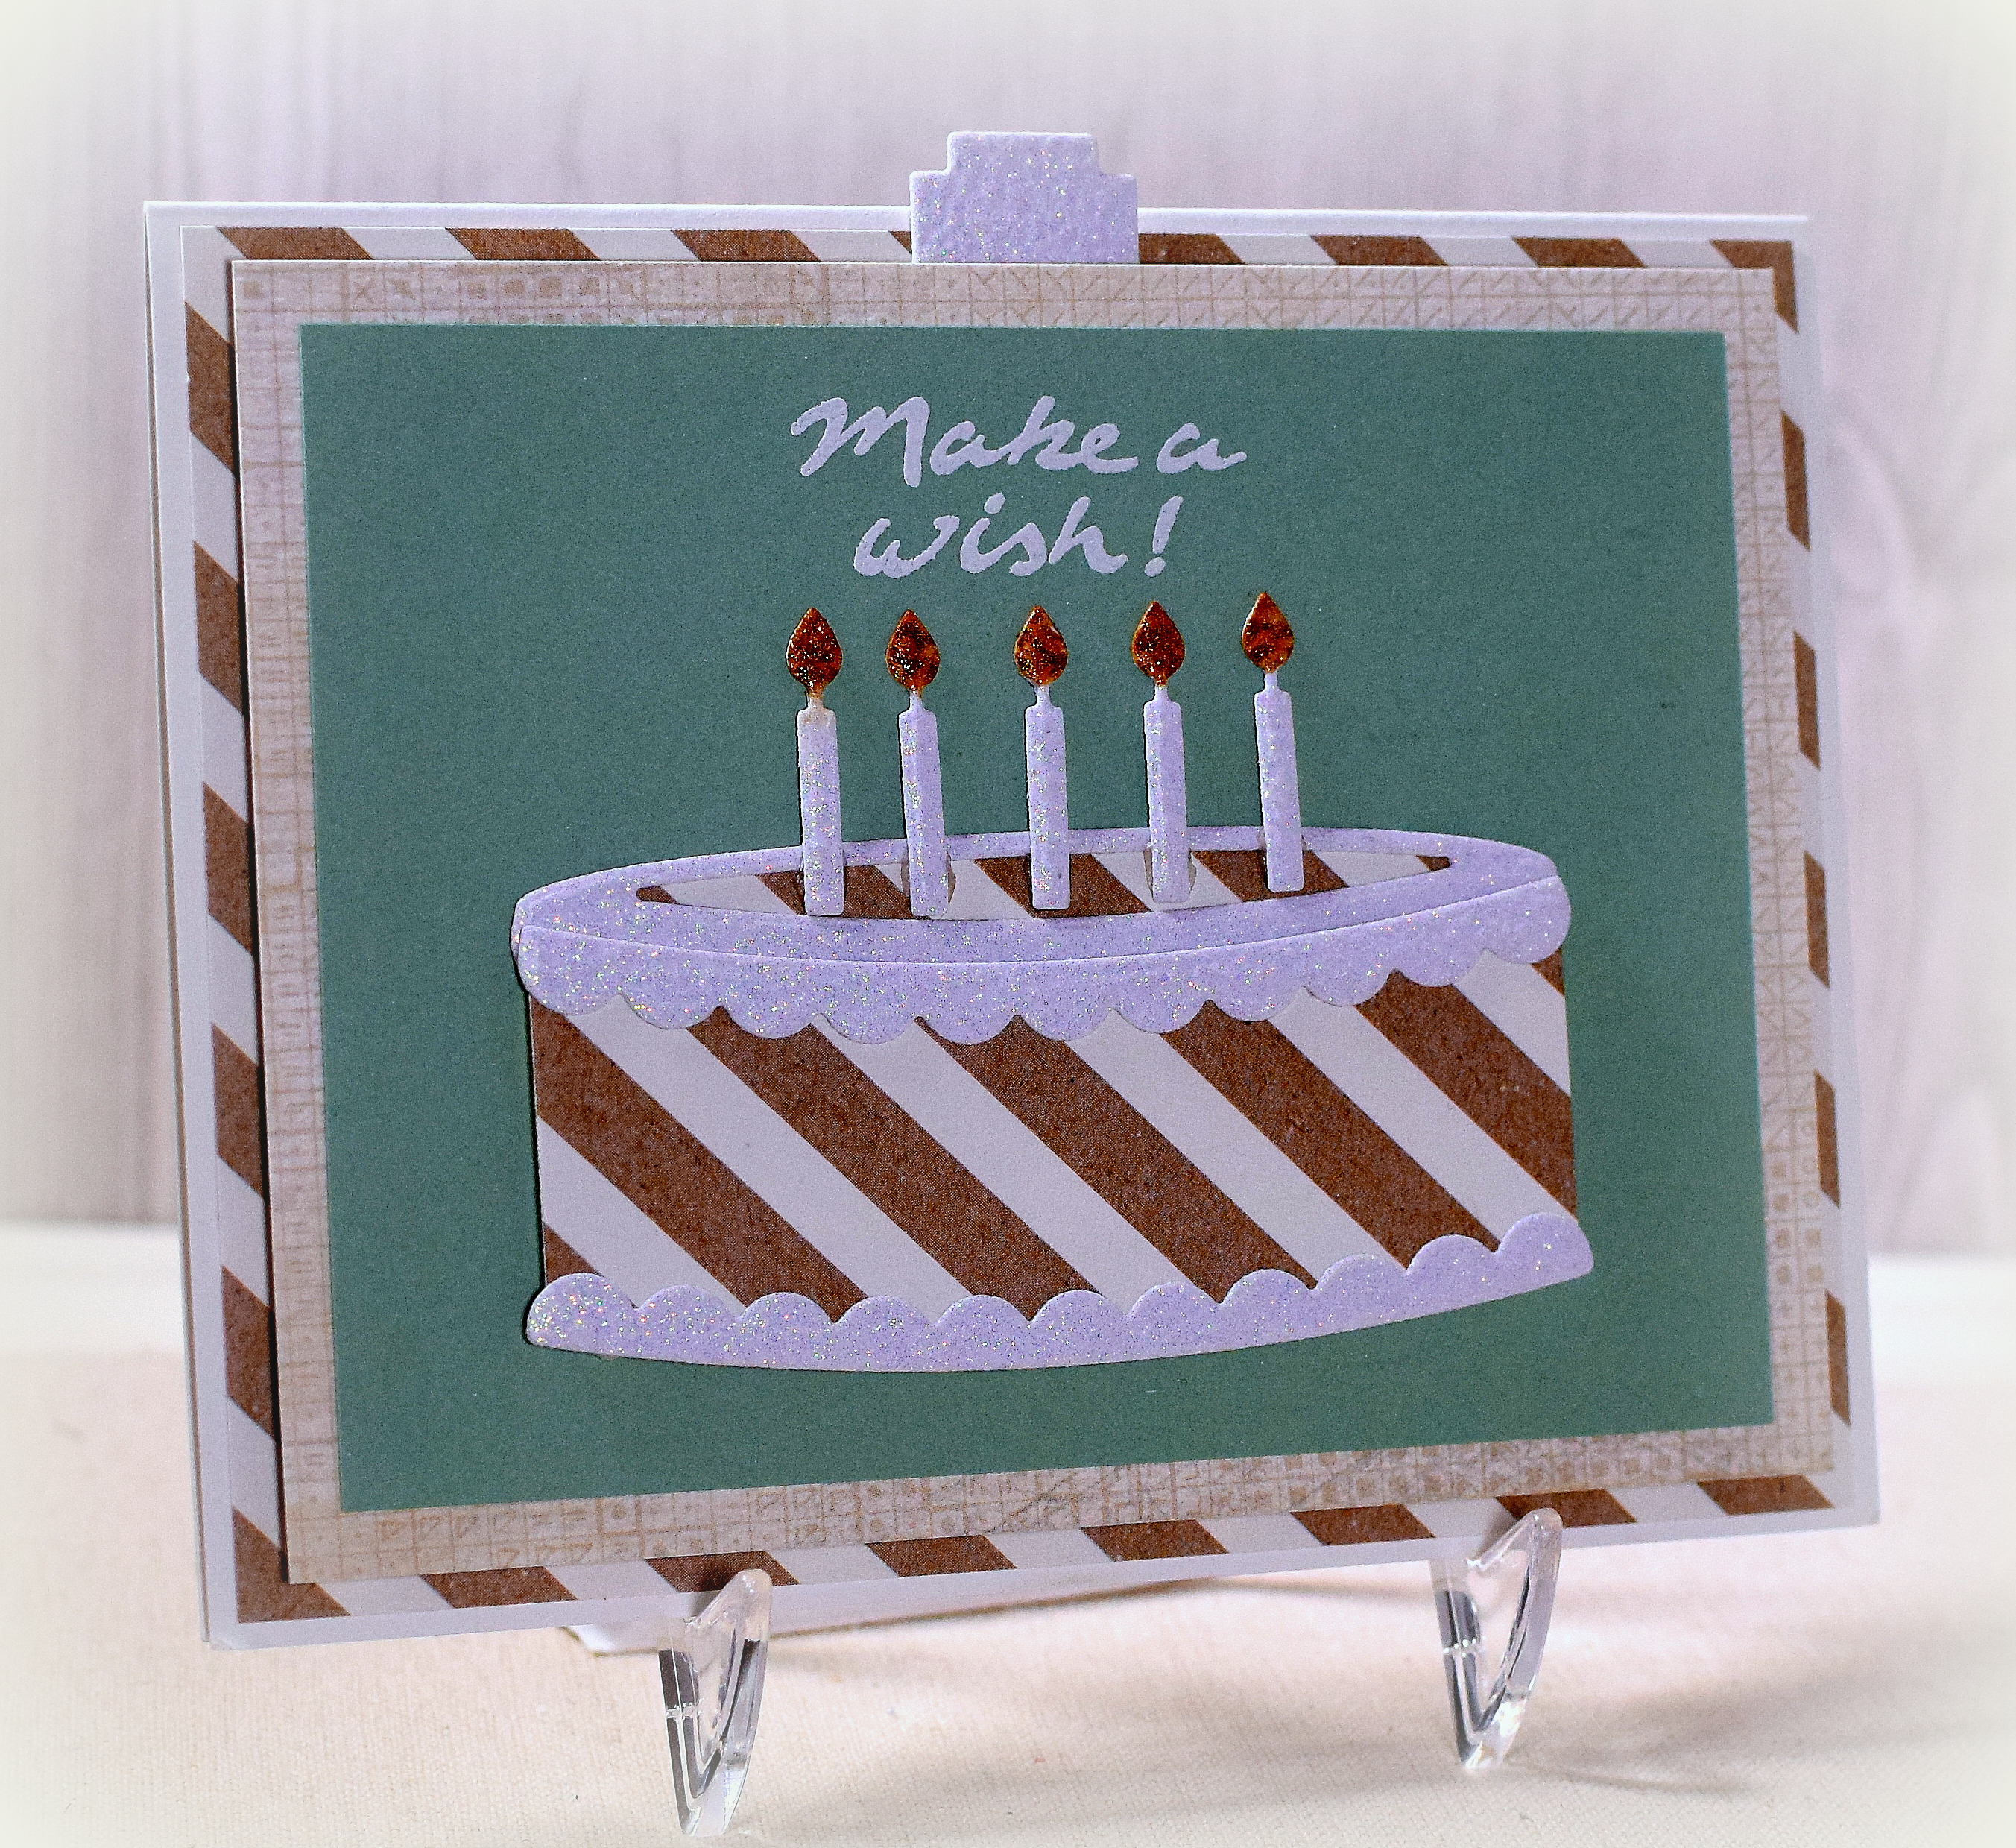 Outstanding Interactive Birthday Cake Card I Played With Paper Today Personalised Birthday Cards Veneteletsinfo